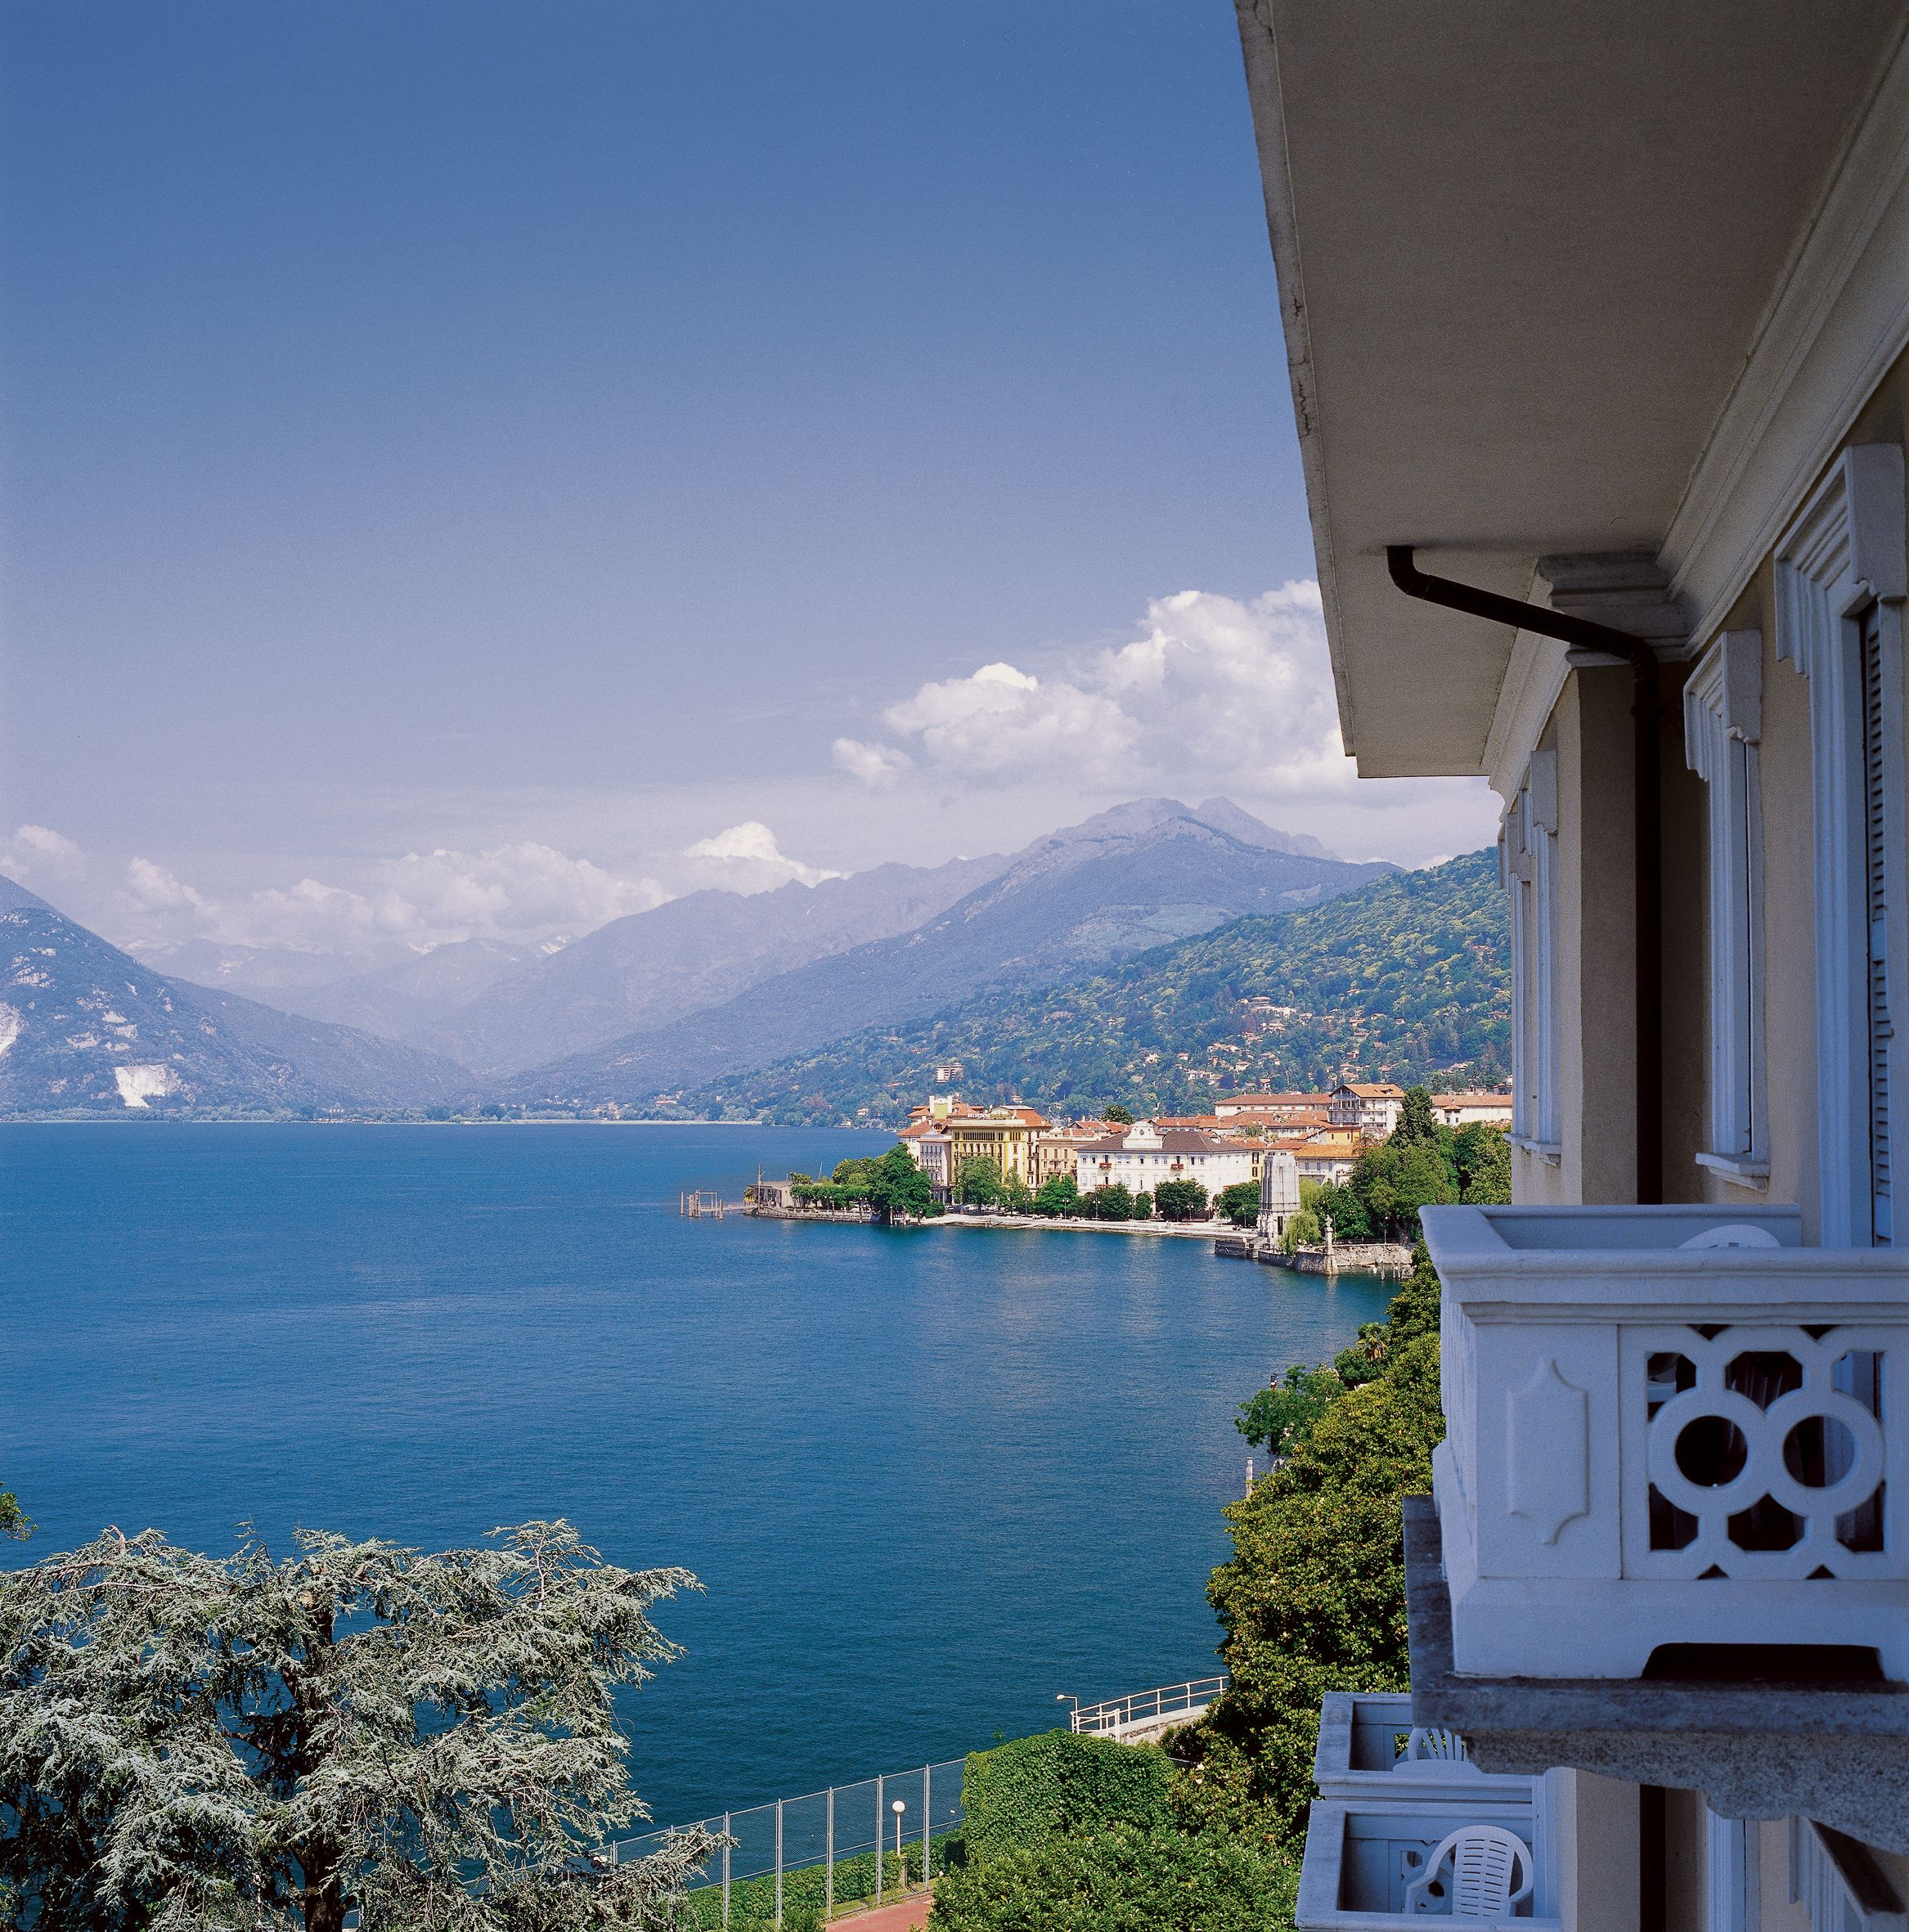 Gorgeous Views Of The Alps Grand Hotel Majestic Lago Maggiore Piedmont Italy Grand Hotel Majestic Hotel Beautiful Hotels